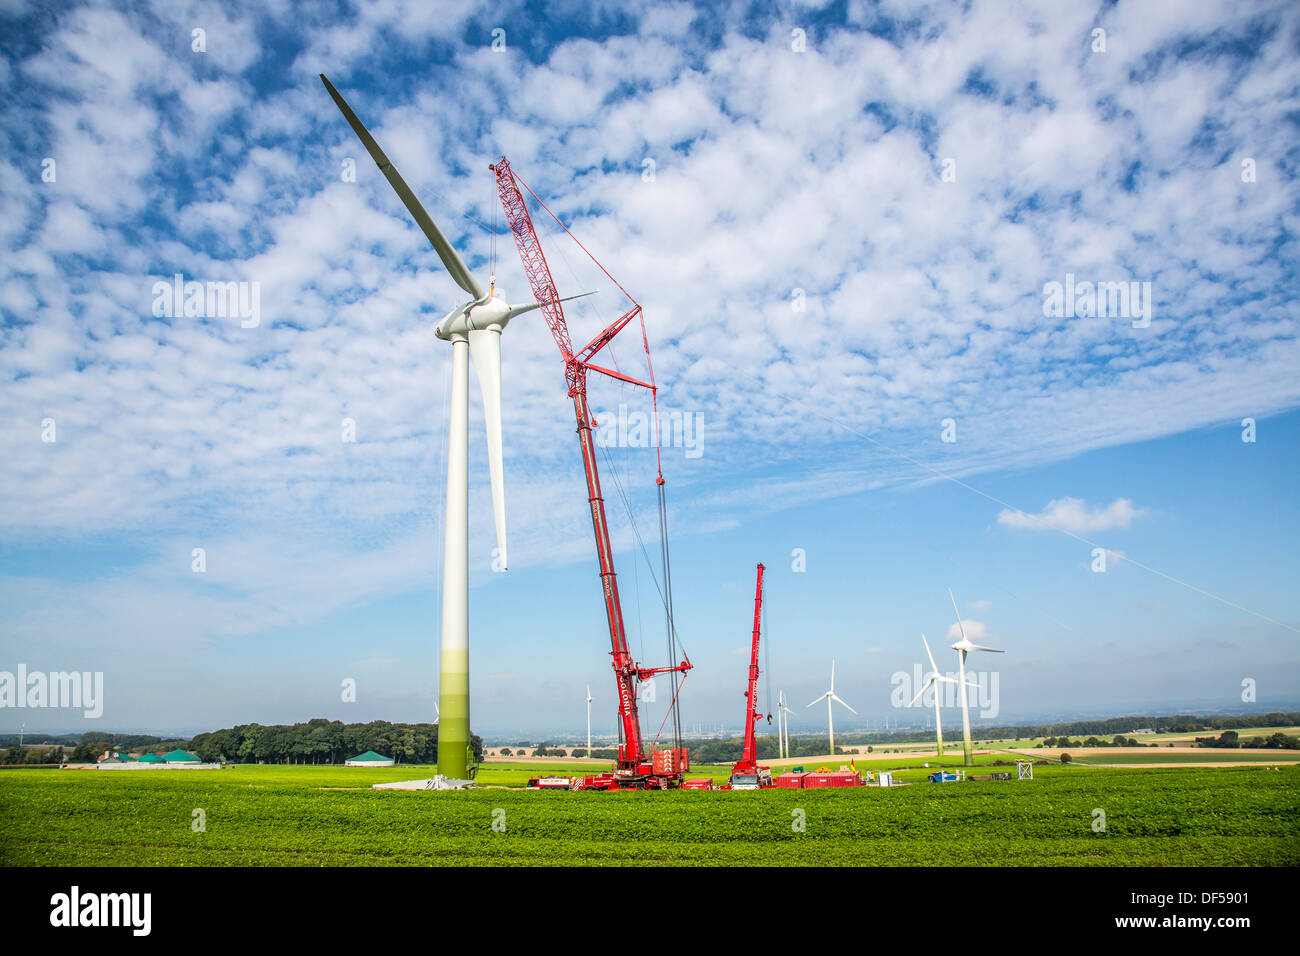 Construction, installation of a wind turbine. Wind turbines, wind farm, park. Wind power, wind energy, construction Stock Photo